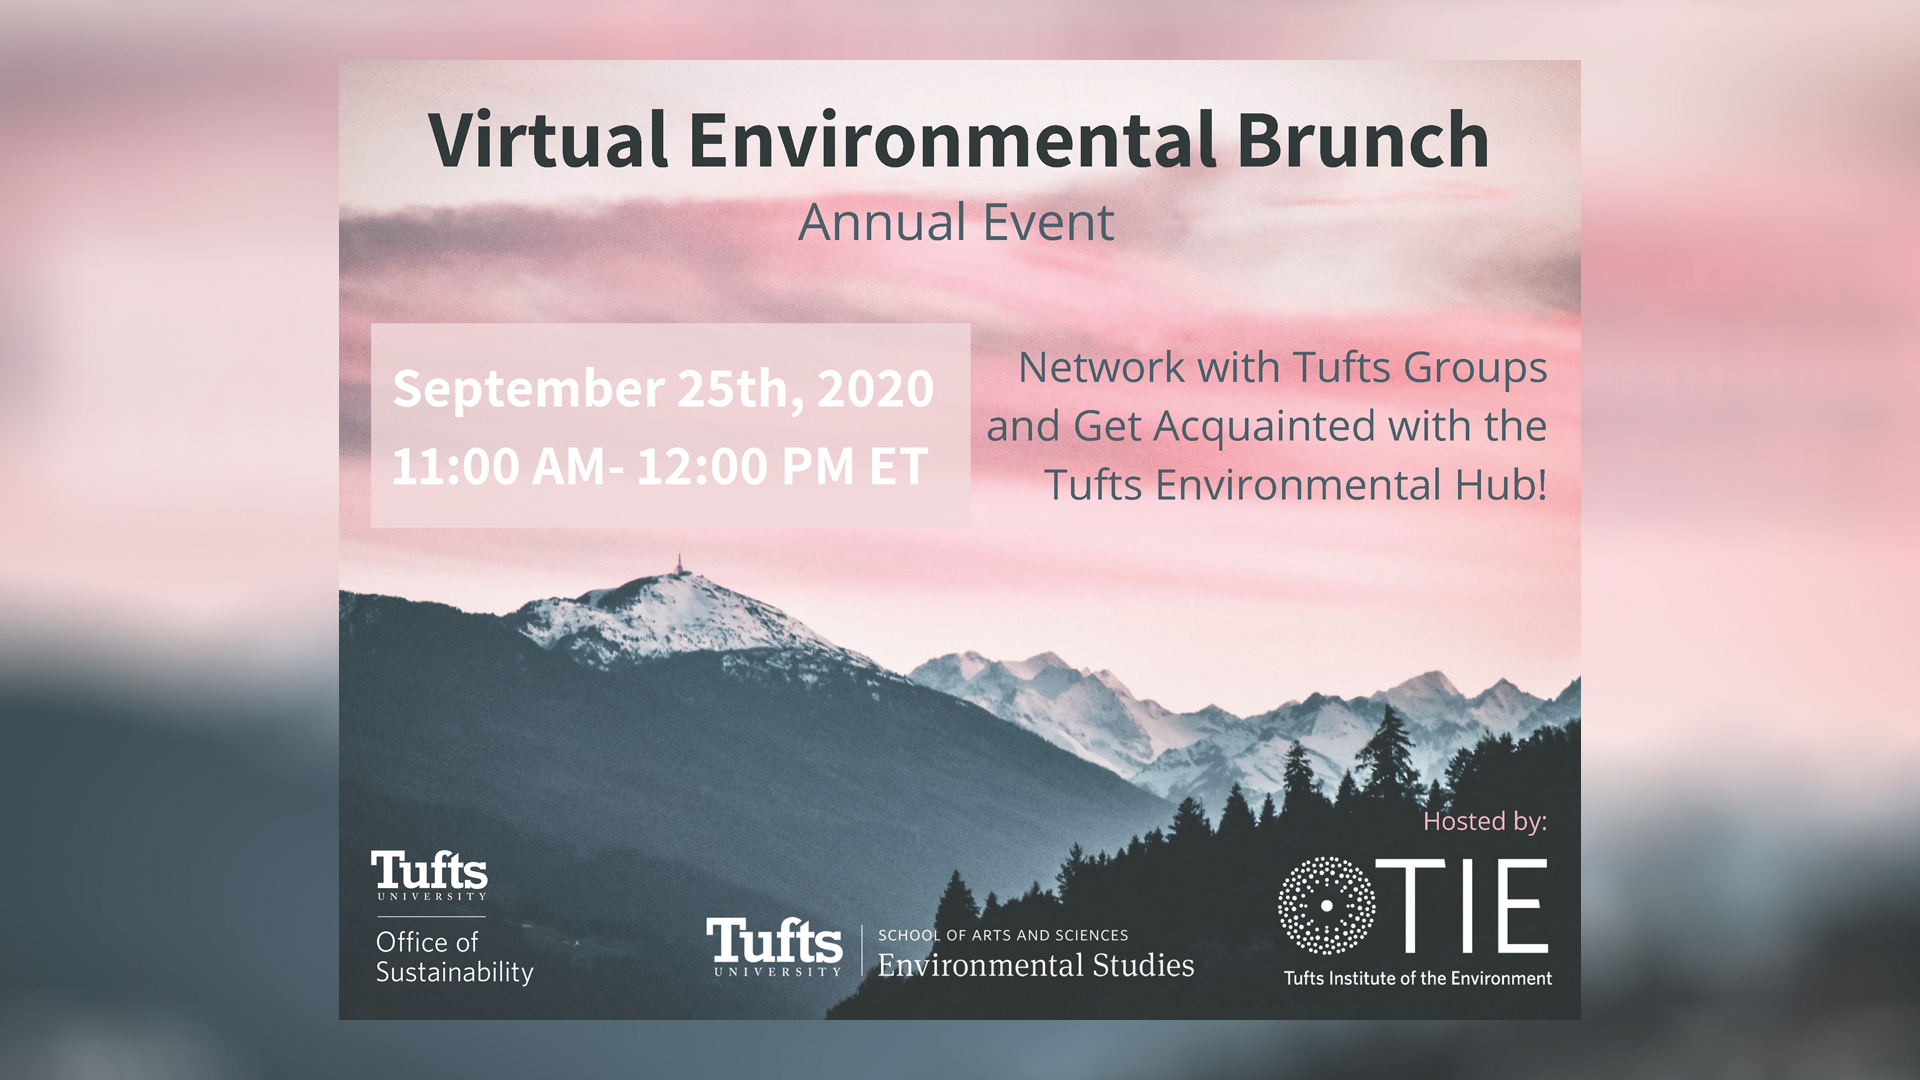 Poster for the Annual Environmental Brunch, with a pink sky and mountains in the background